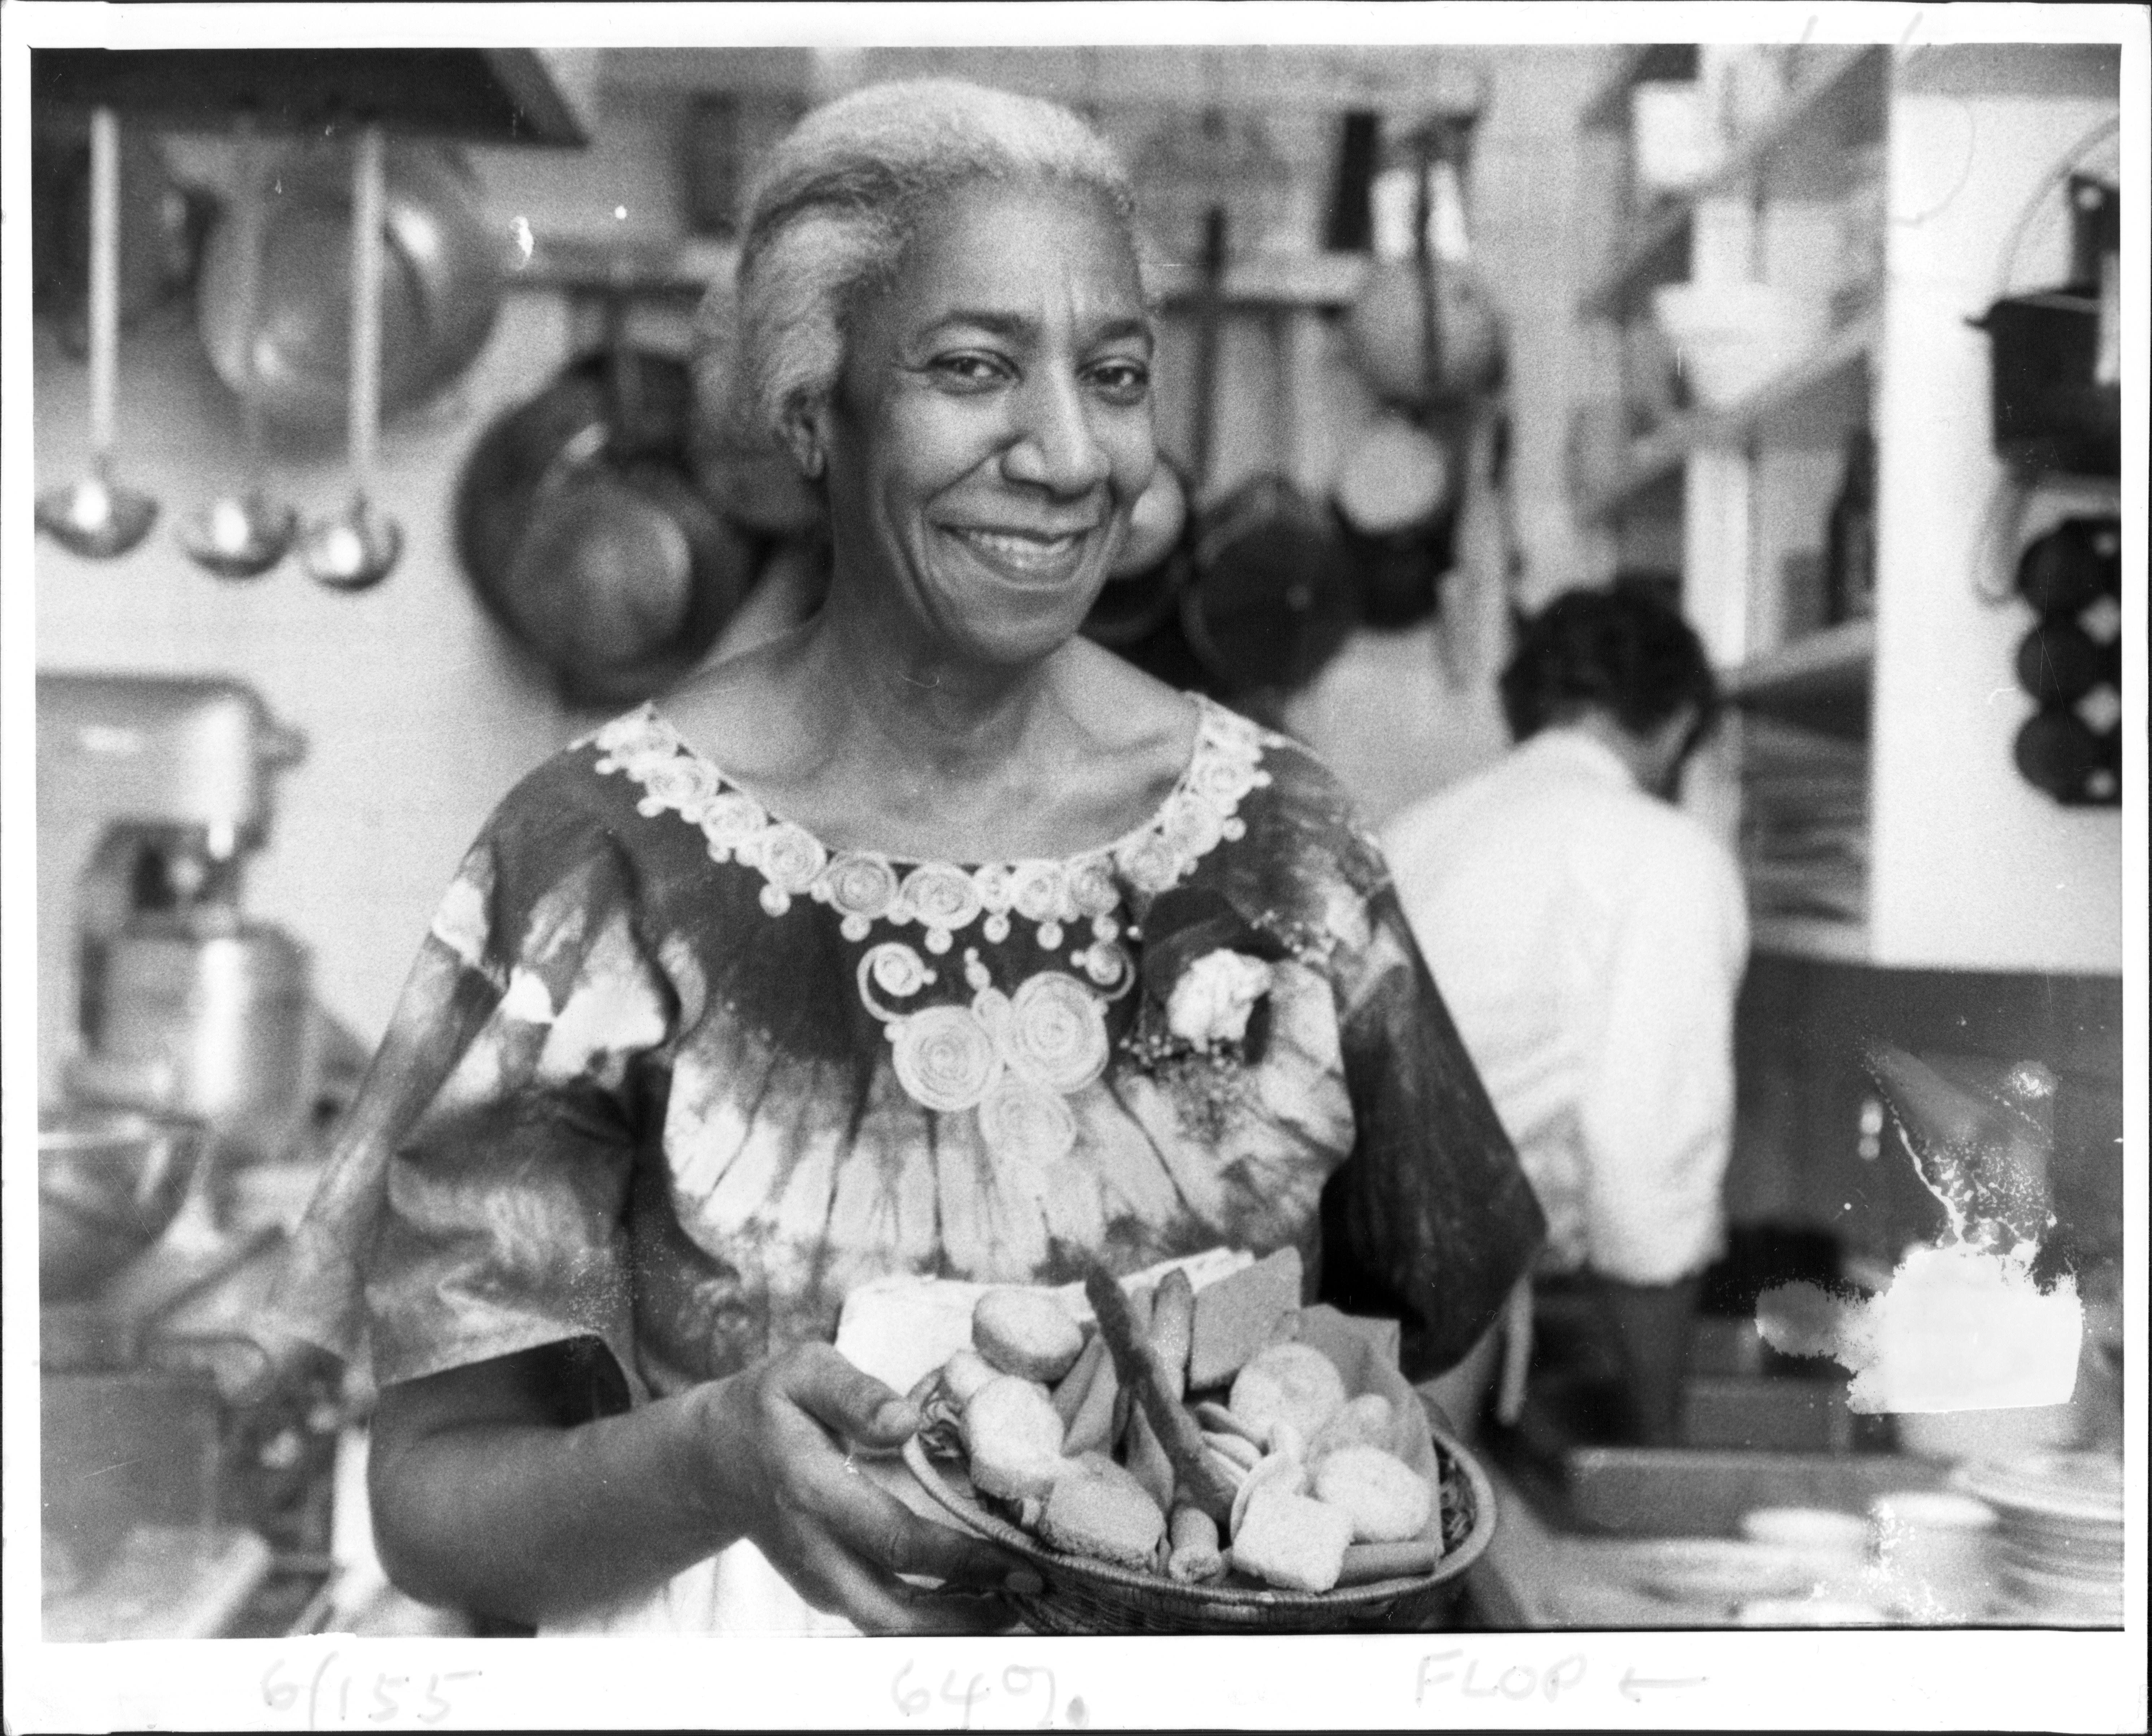 Culinary Pioneer Edna Lewis' Cookbook Gets a 'Top Chef' Sales Bump